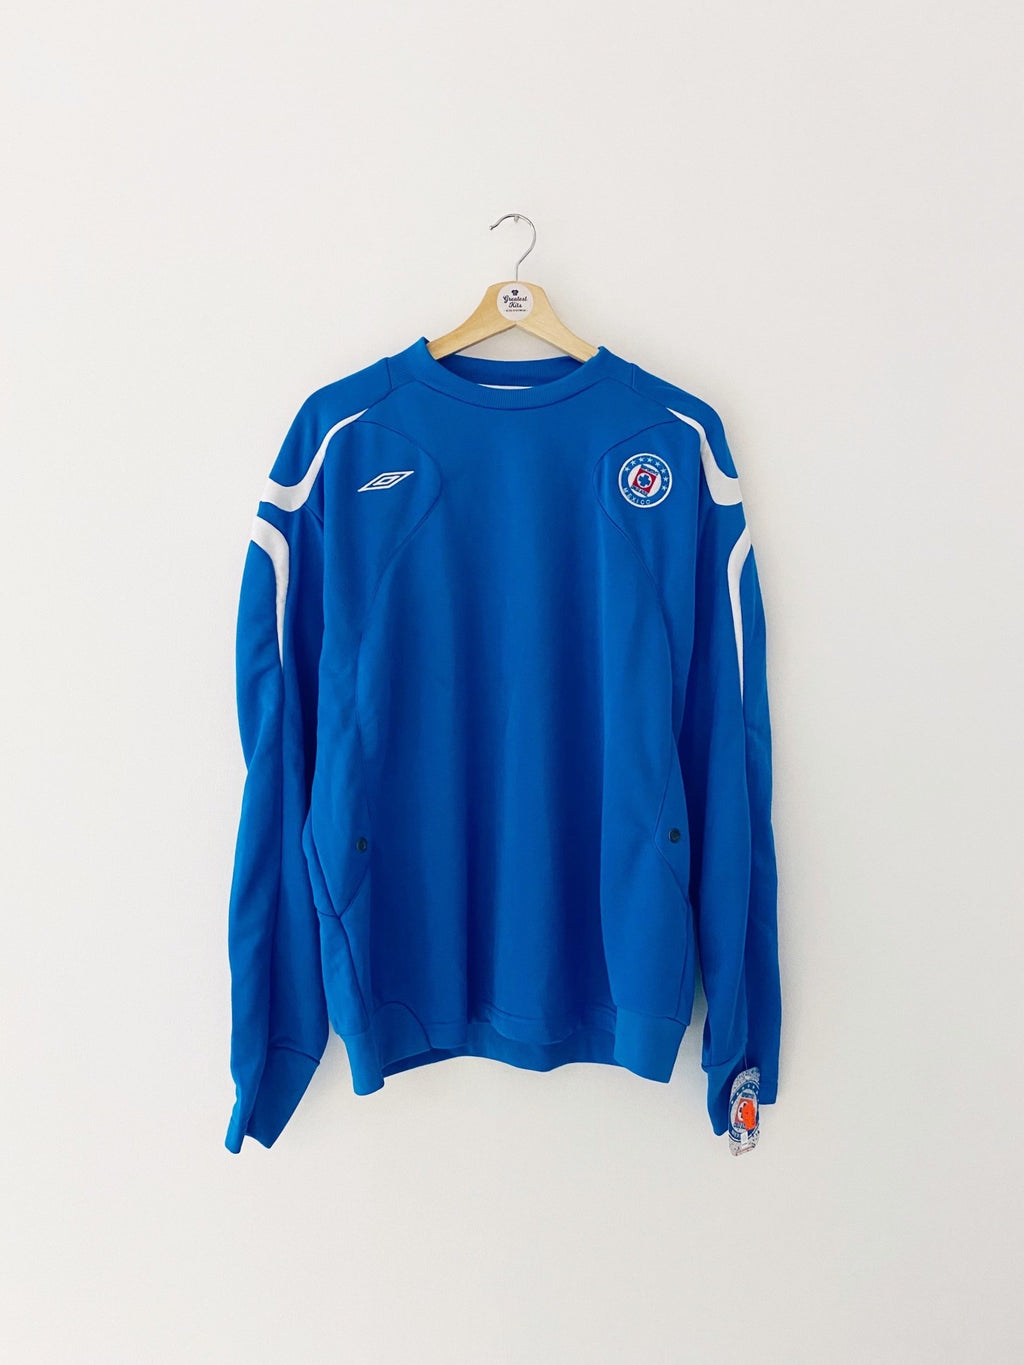 2006/07 Cruz Azul Training Top (XL) BNWT